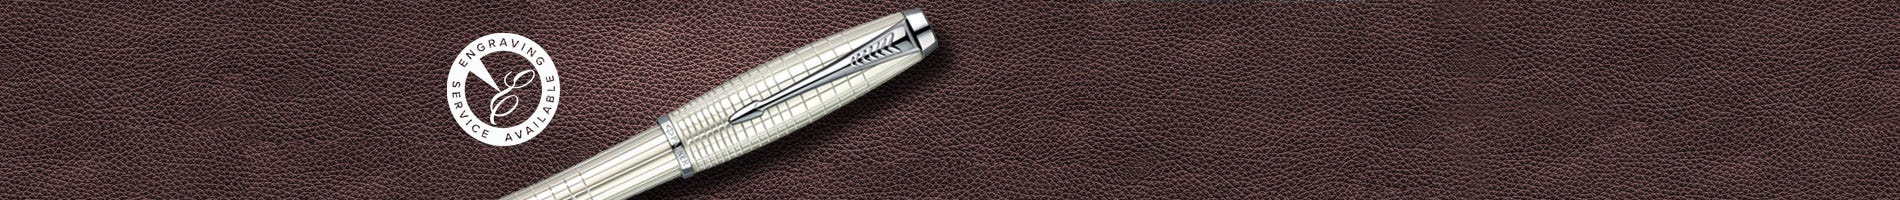 Parker Sonnet rollerball pen in red lacquer